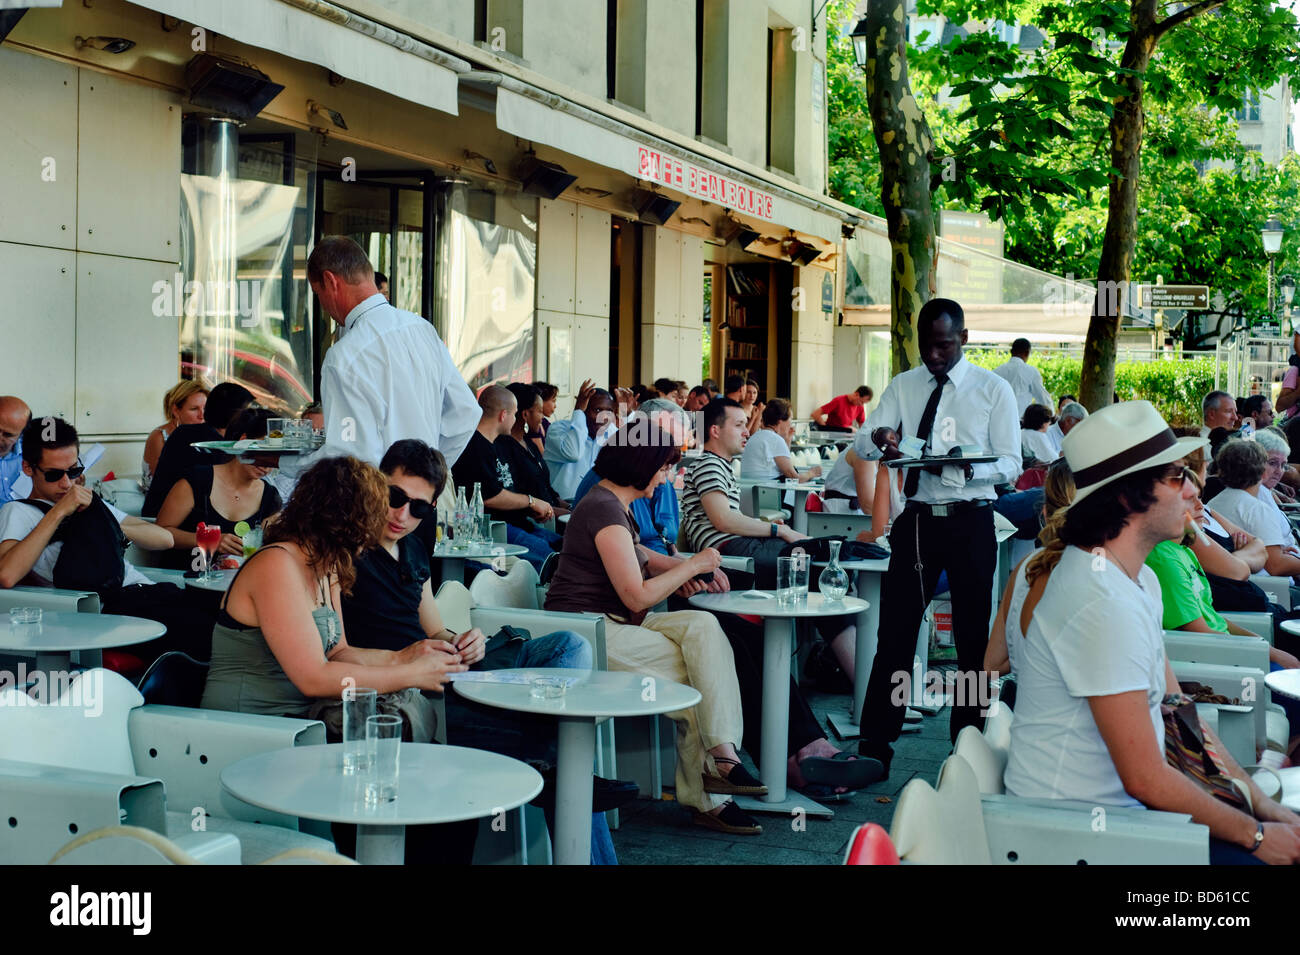 Paris Cafe, France, French Bistro Restaurant, Crowd of People Sharing Drinks, Sidewalk terrace 'Café Beaubourg' - Stock Image